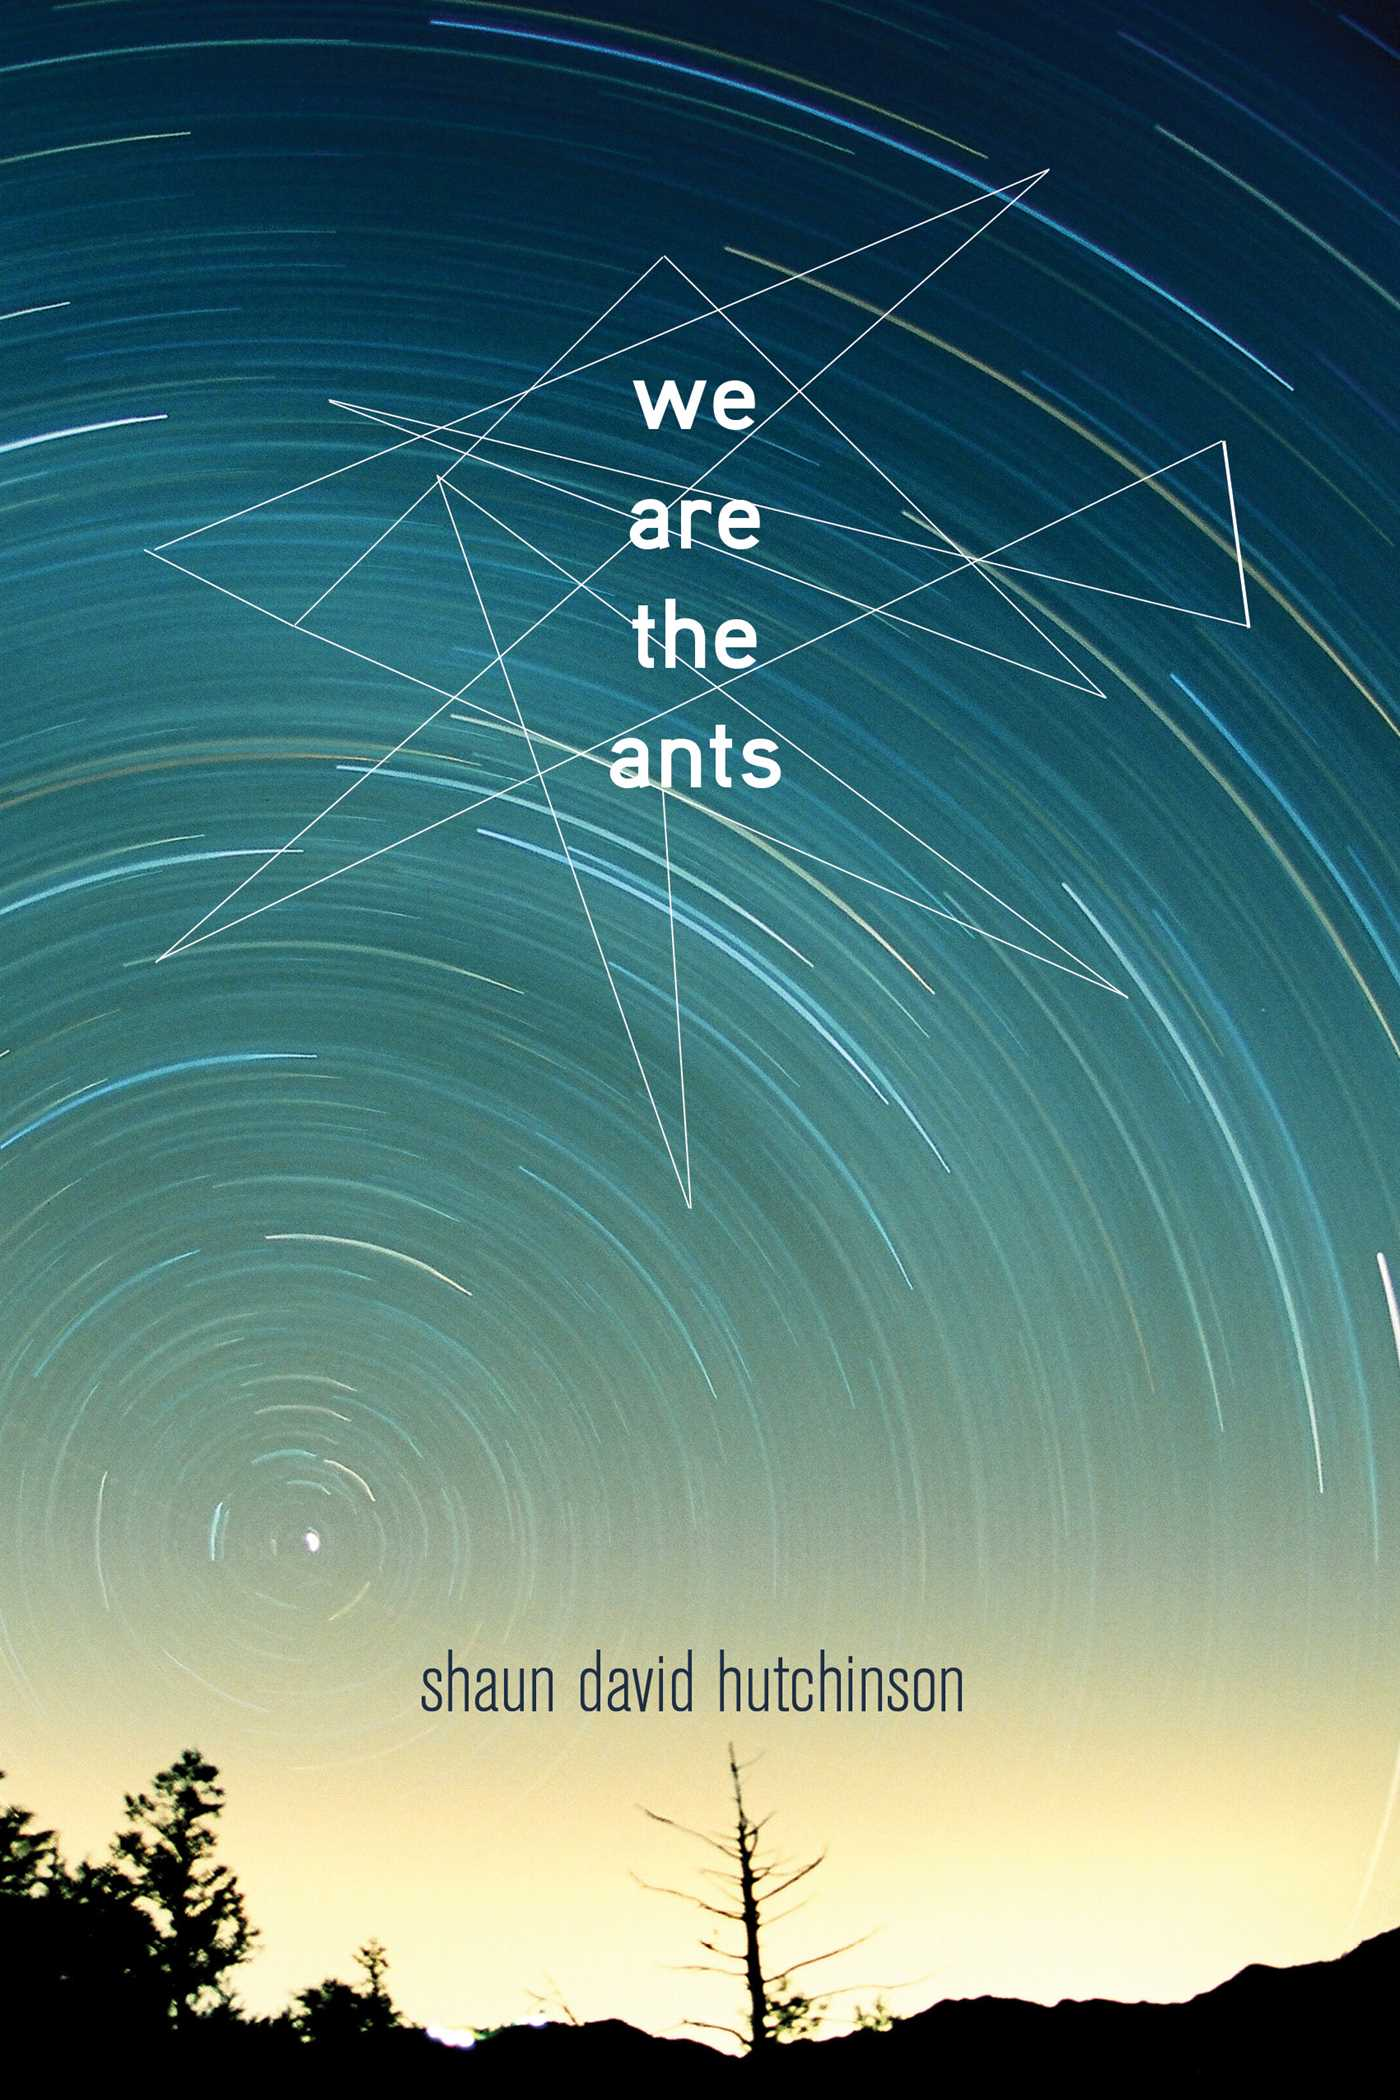 Afbeeldingsresultaat voor we are the ants shaun david hutchinson